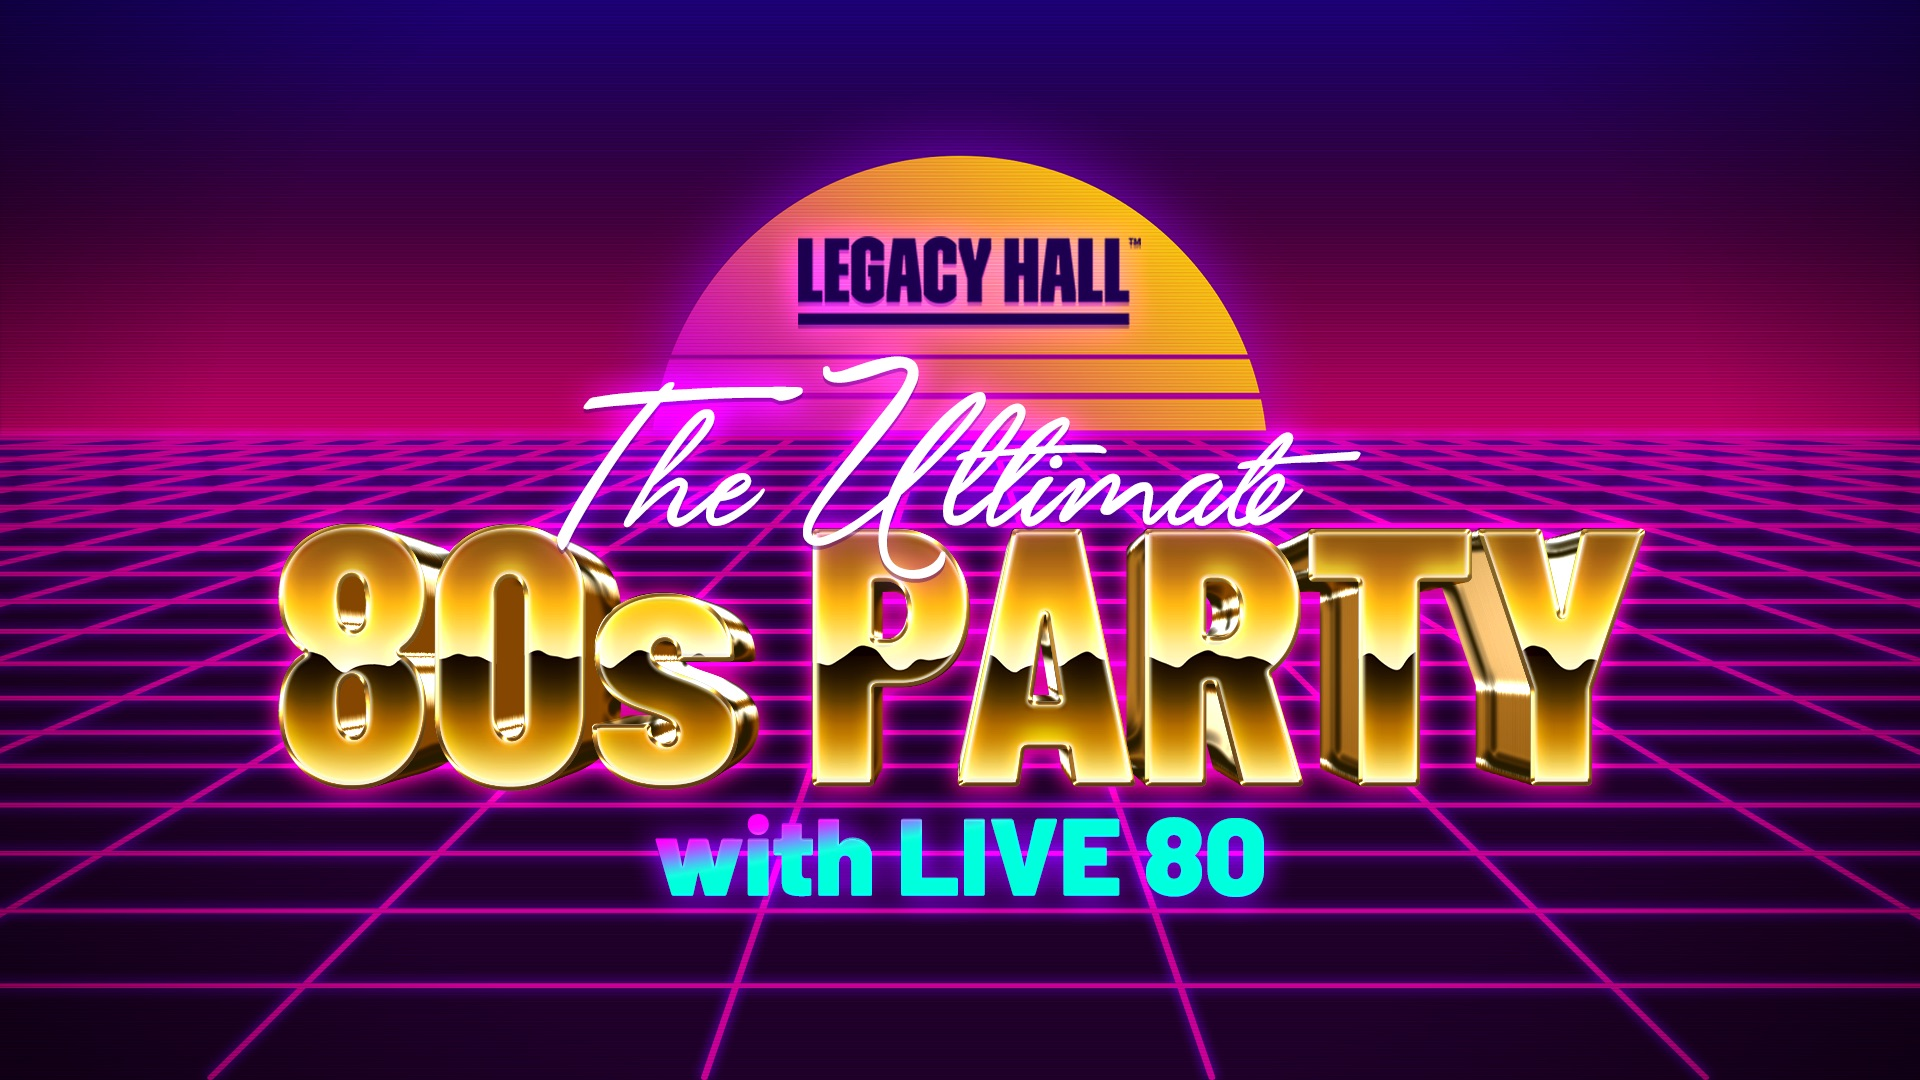 Promo image of The Ultimate 80s Party with Live 80